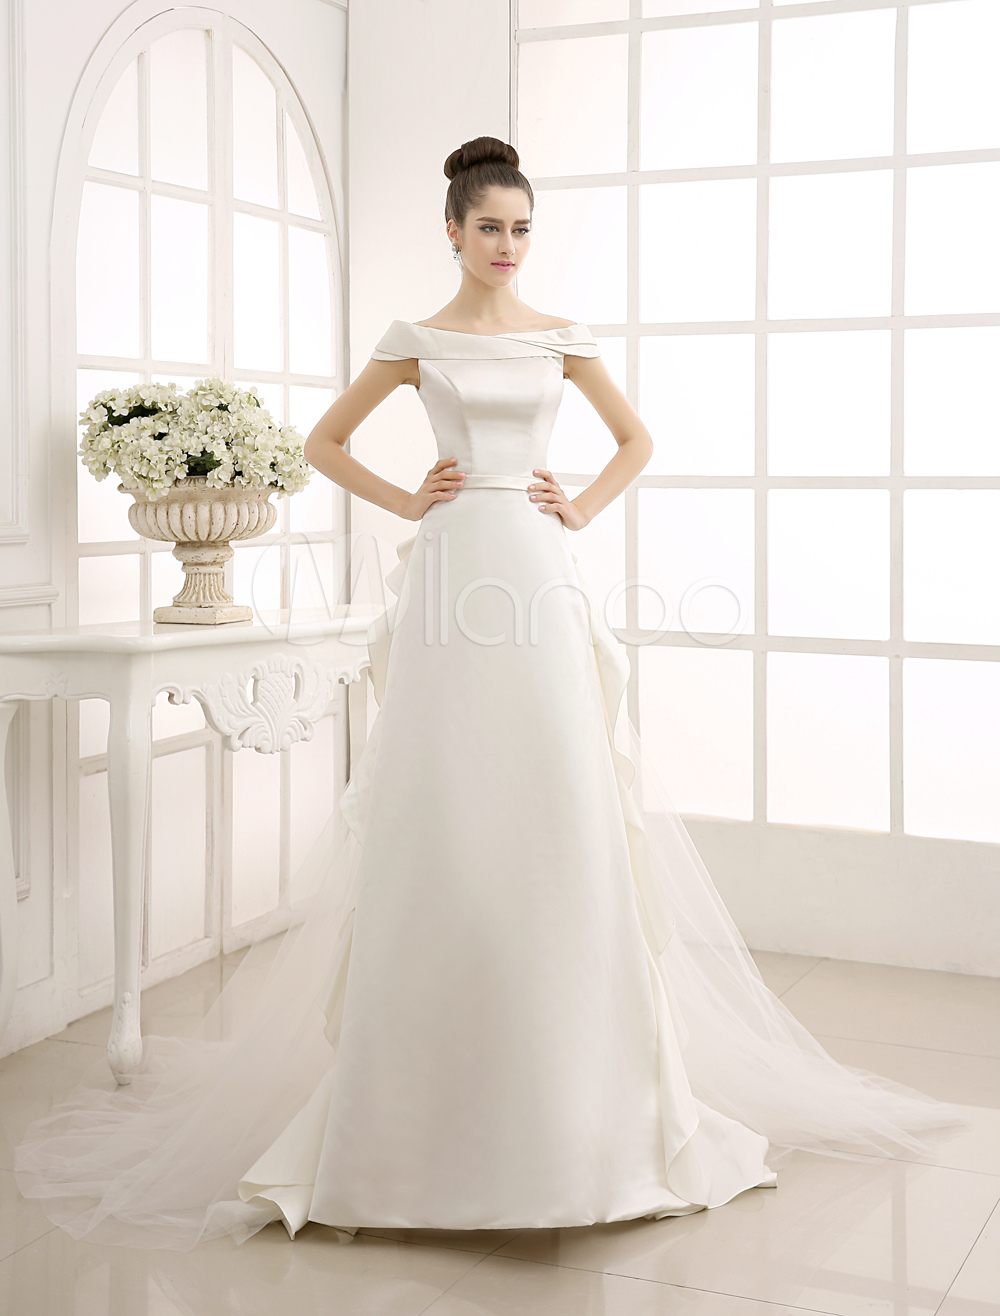 Ivory A-Line Sweep Bridal Wedding Dress with Off-The-Shoulder Ruffles Milanoo